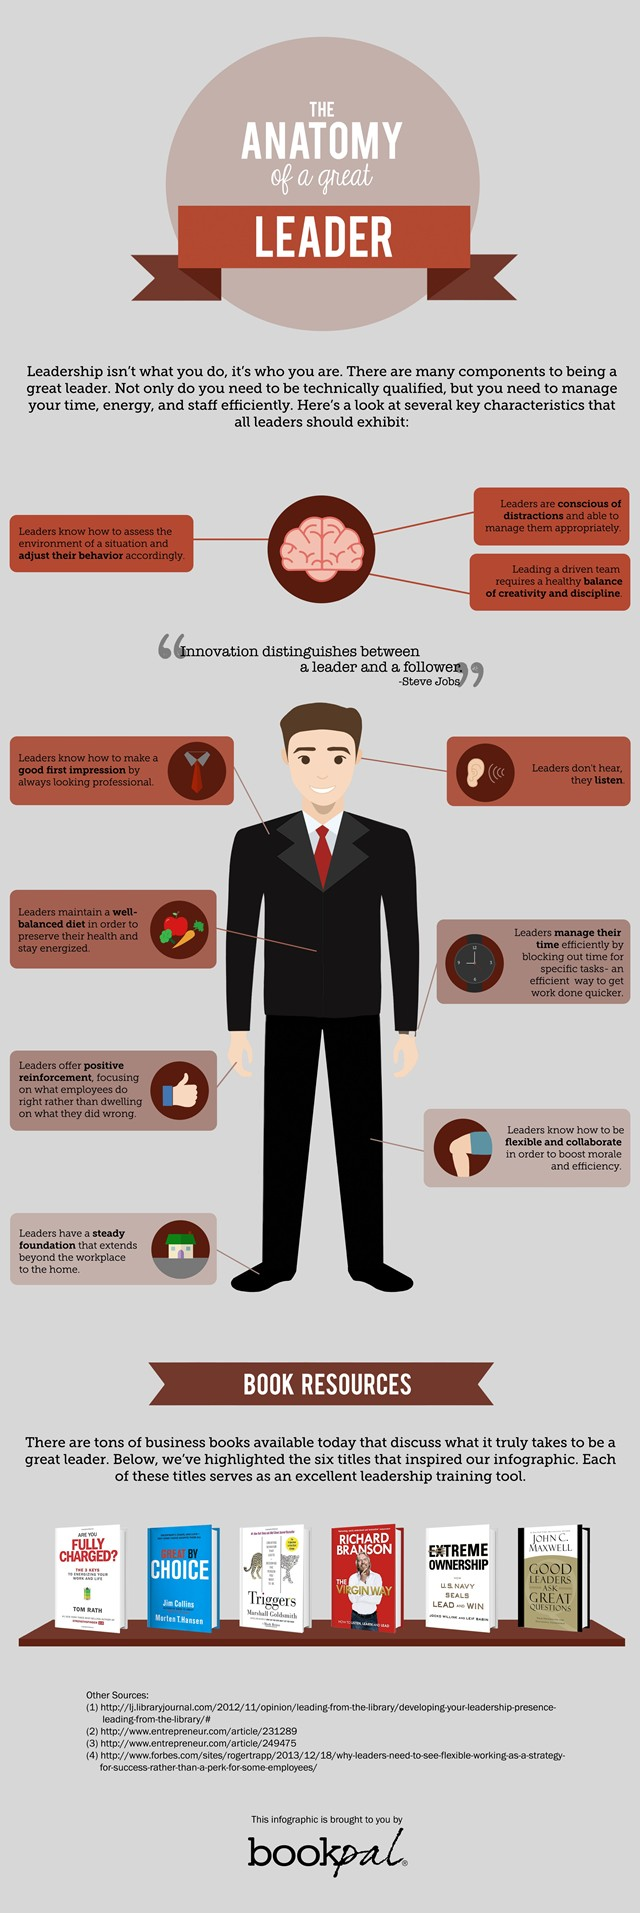 Anatomy of a Great Leader